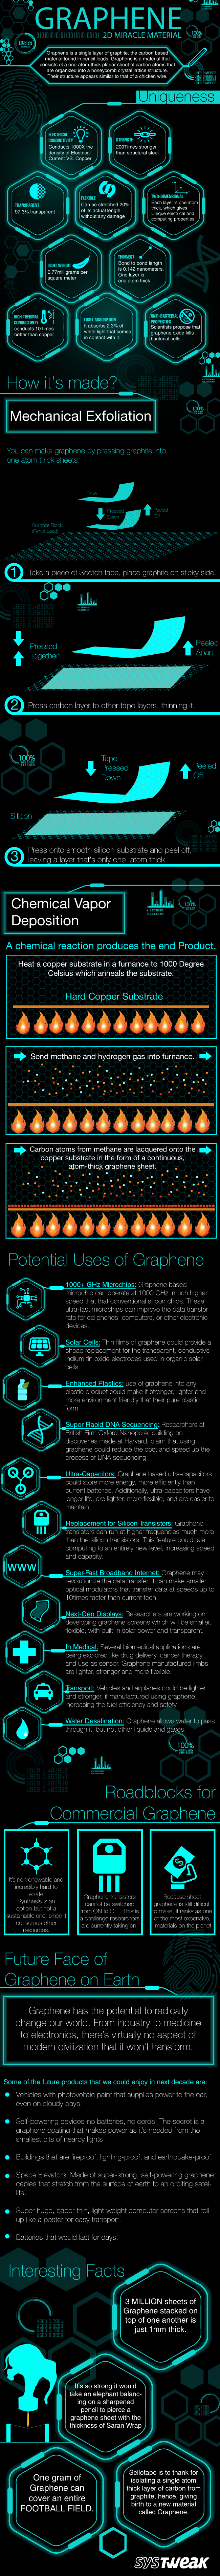 Graphene: 2D Miracle Material Shaping Our Future